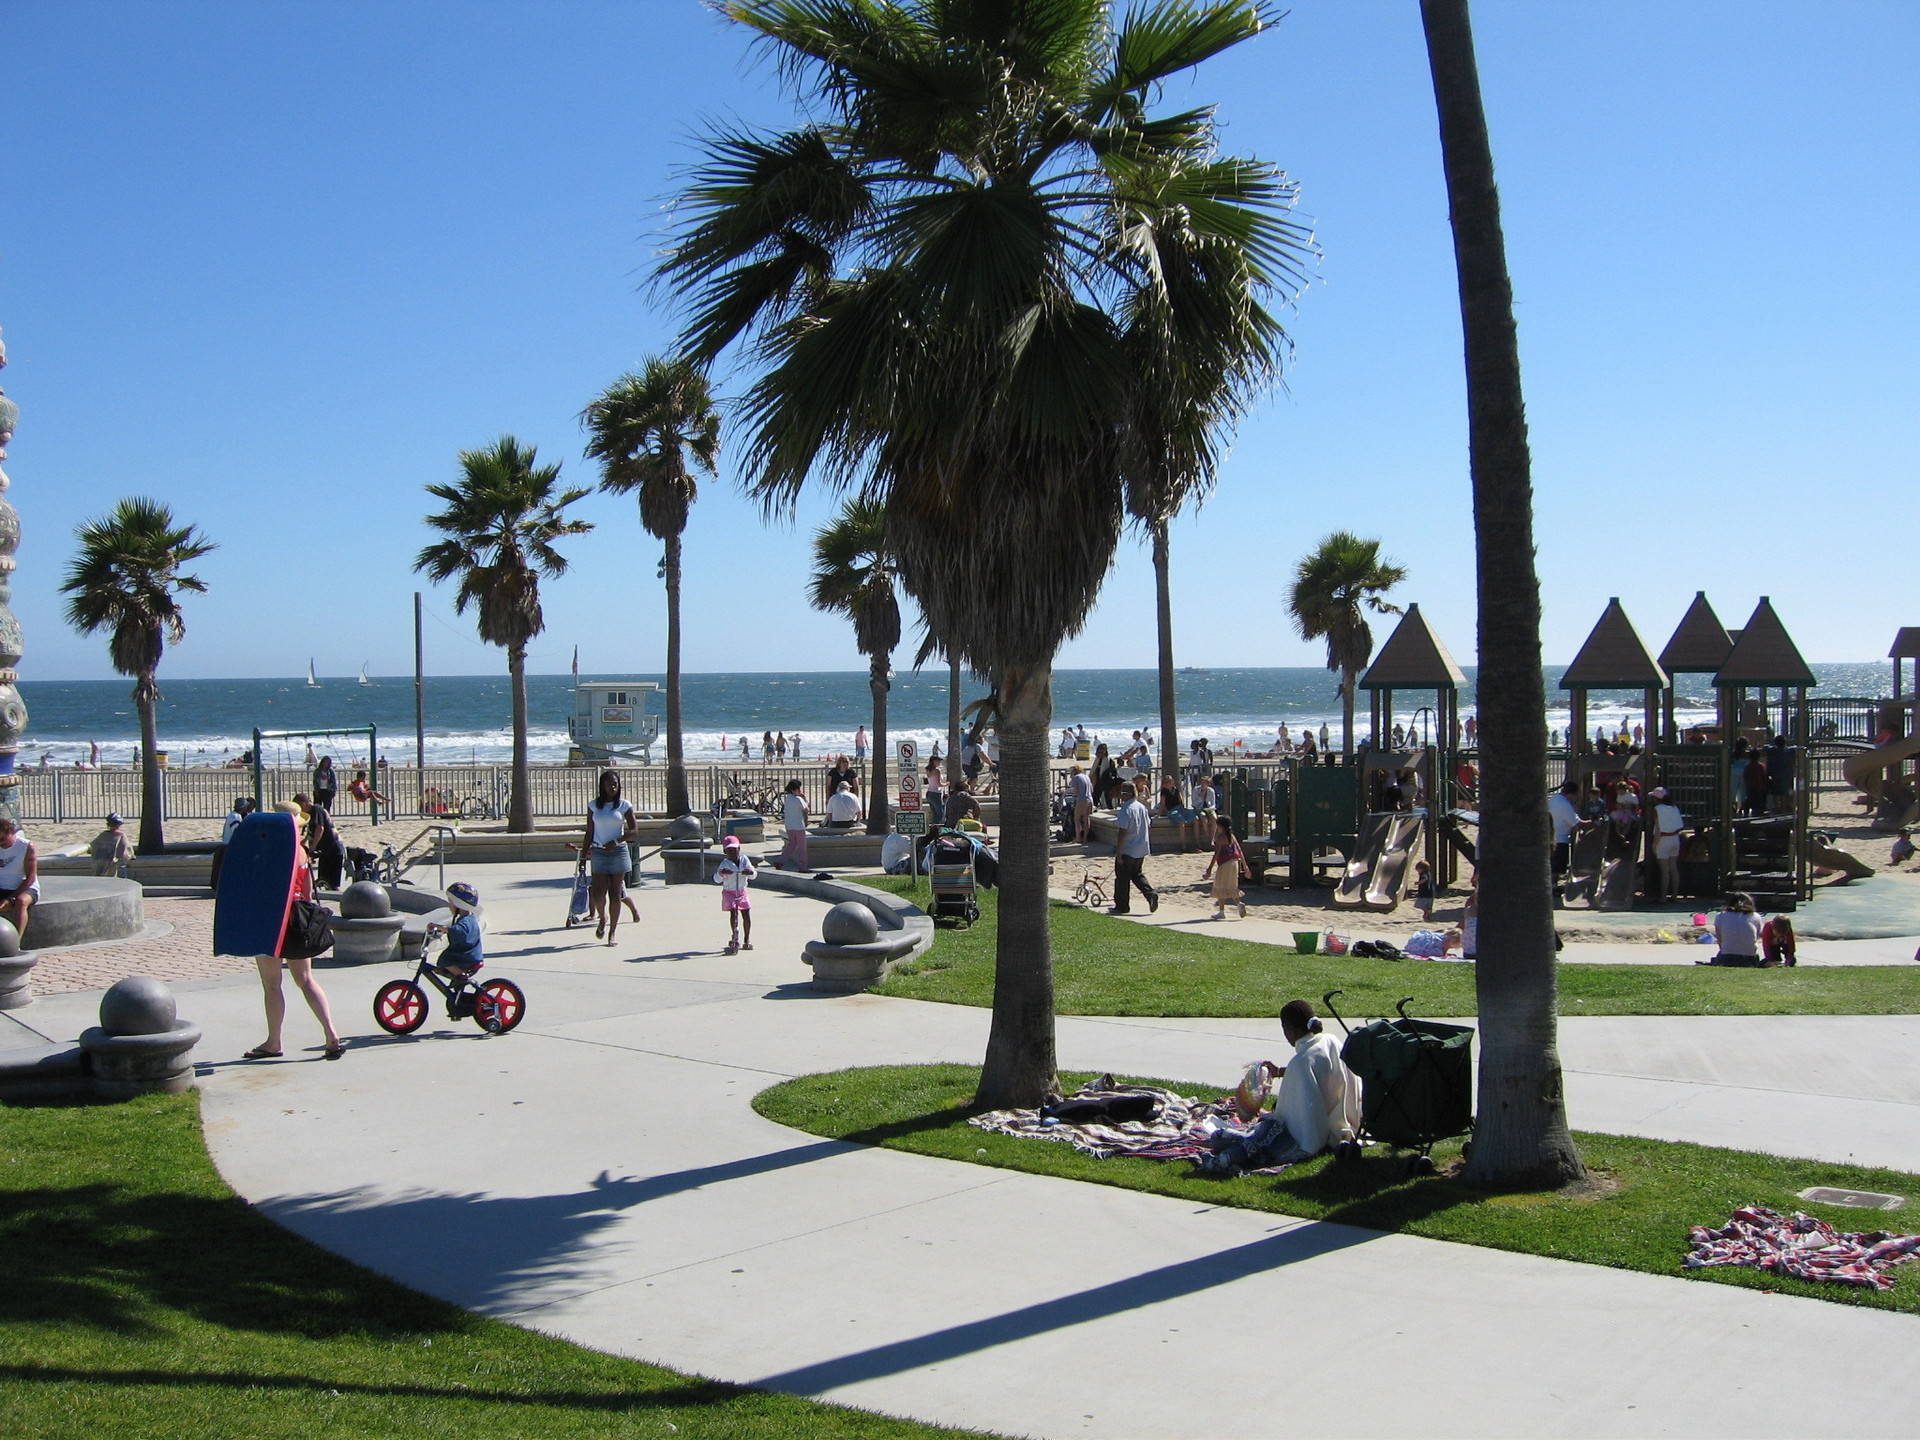 Los Angeles Images Venice Beach Hd Wallpaper And Background Photos 1106493